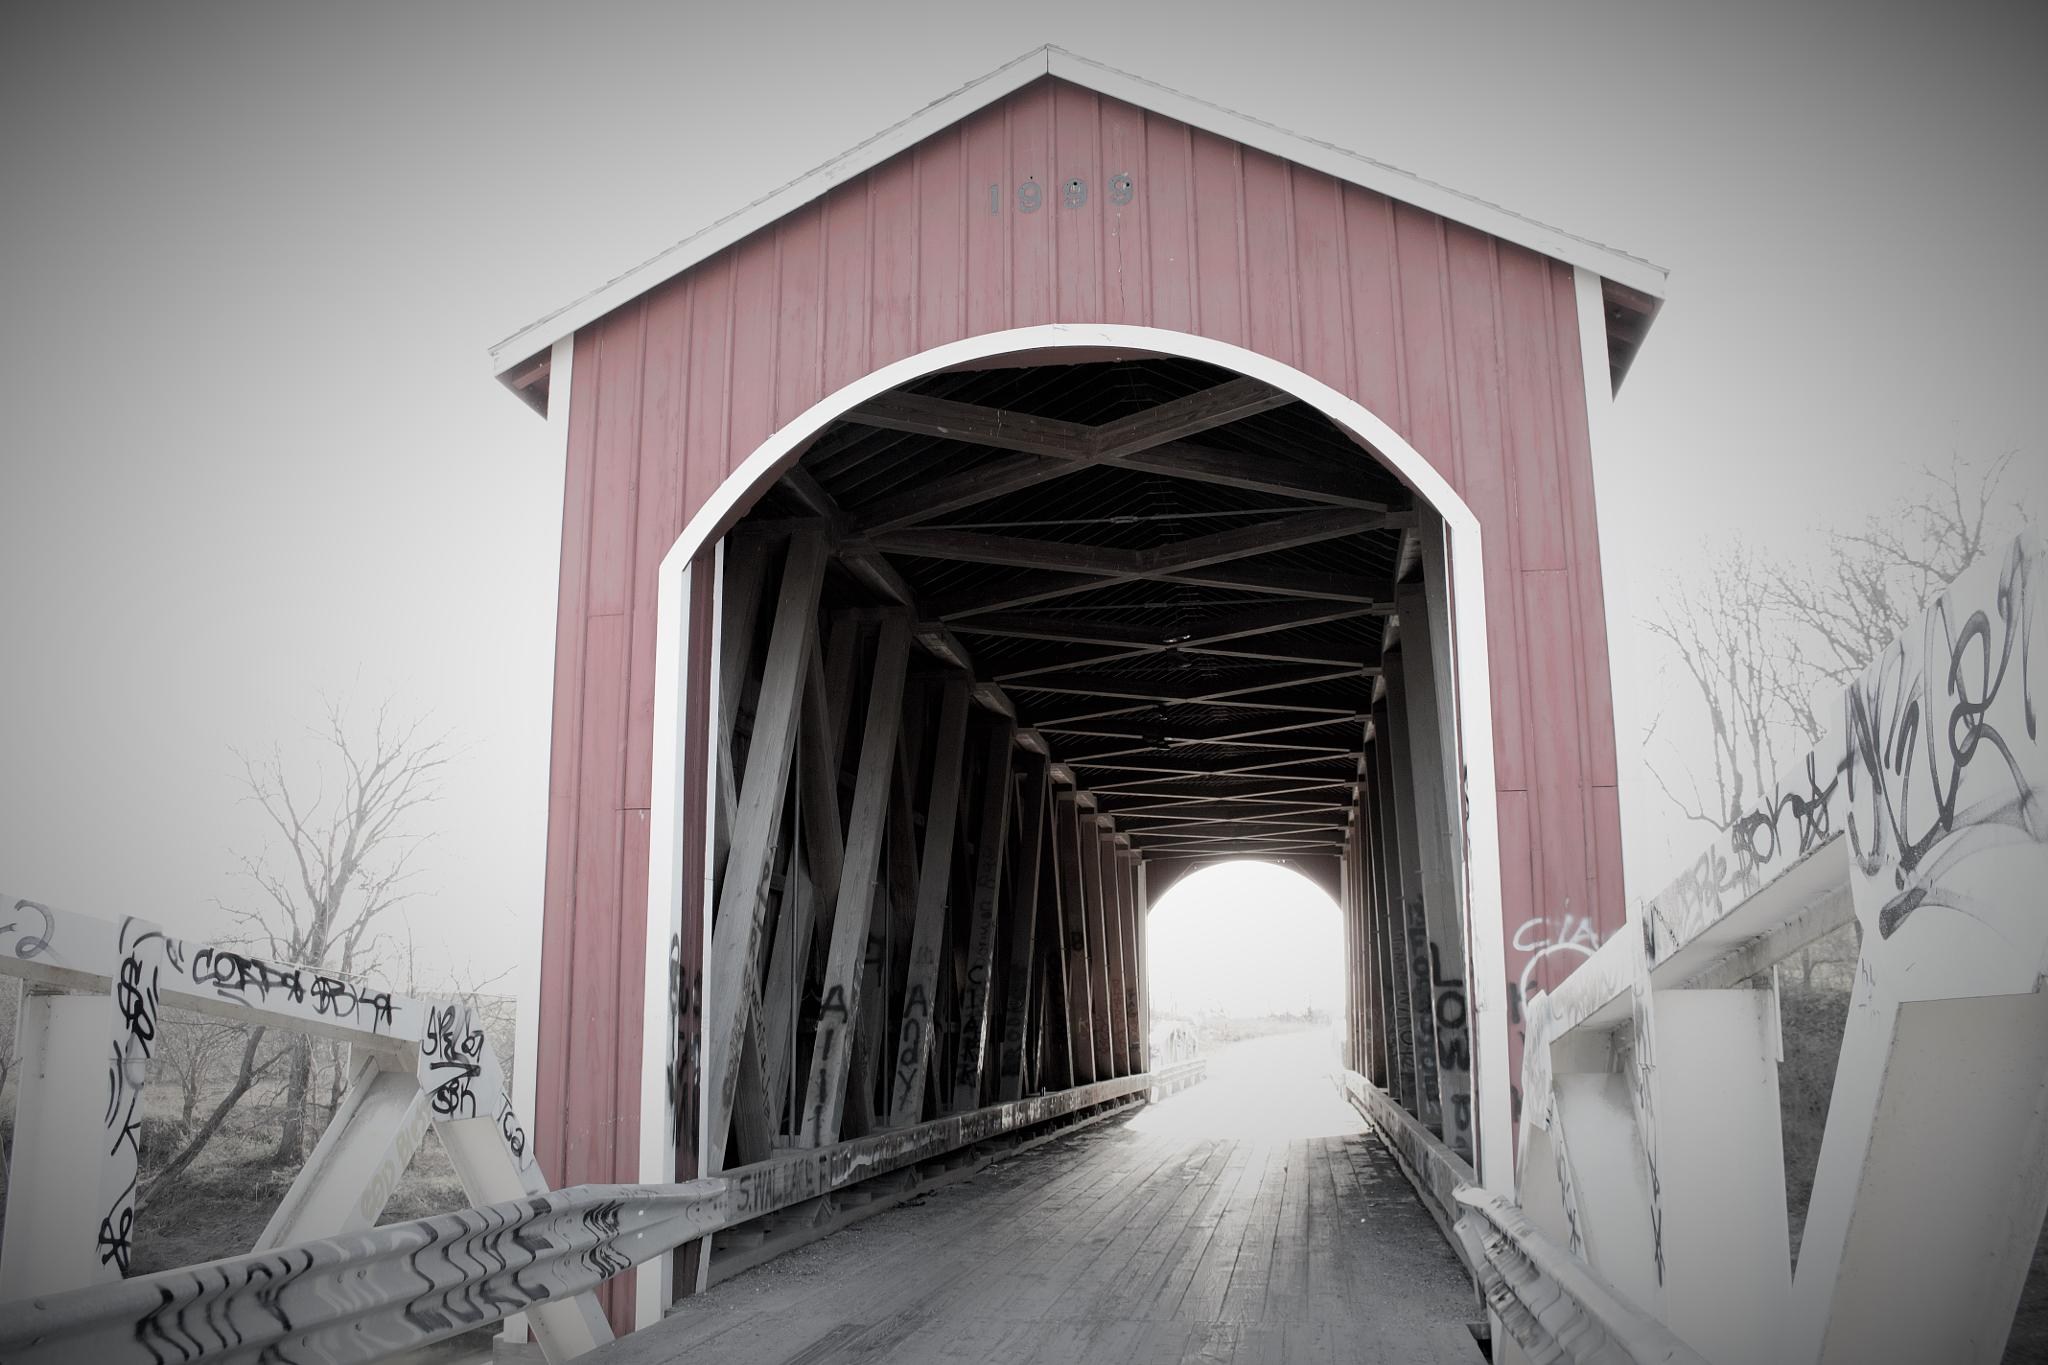 Covered Bridge Over the Spoon River by MissyP87